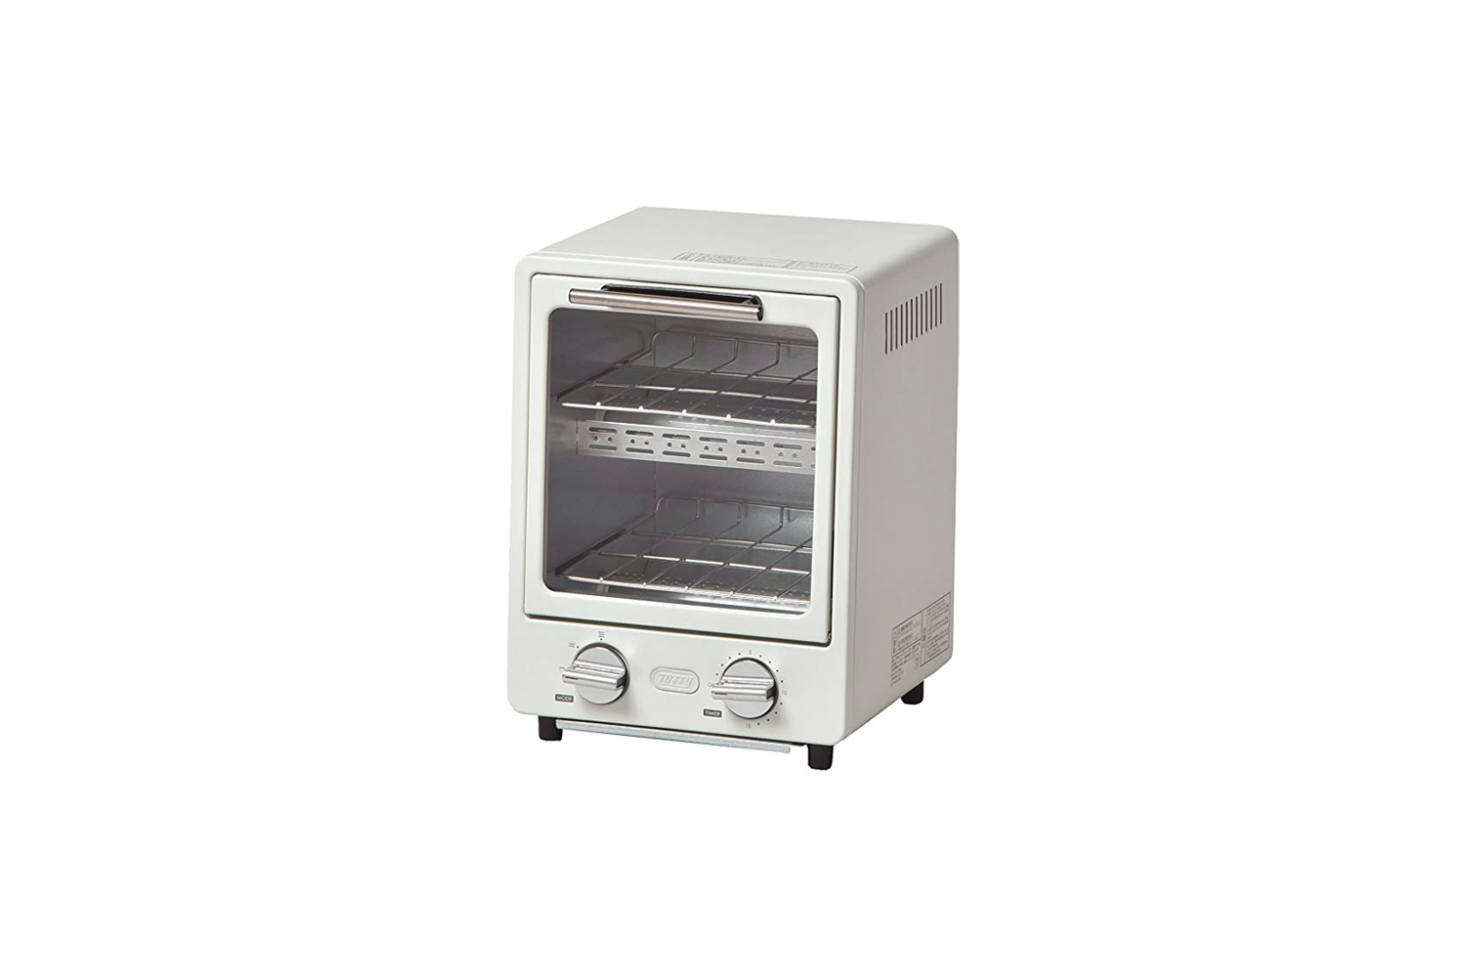 The Radonna Oven Toaster comes in three colors (Ash White, shown; Blue; and Shell Pink) and has a slanted front/trapezoid shape. It measures 9.5 inches wide by about  inches high for $3.73 from sellers on Amazon. It can also be sourced through Sano Shop out of Japan. (Power supply AC 0 V 50/60 Hz.)